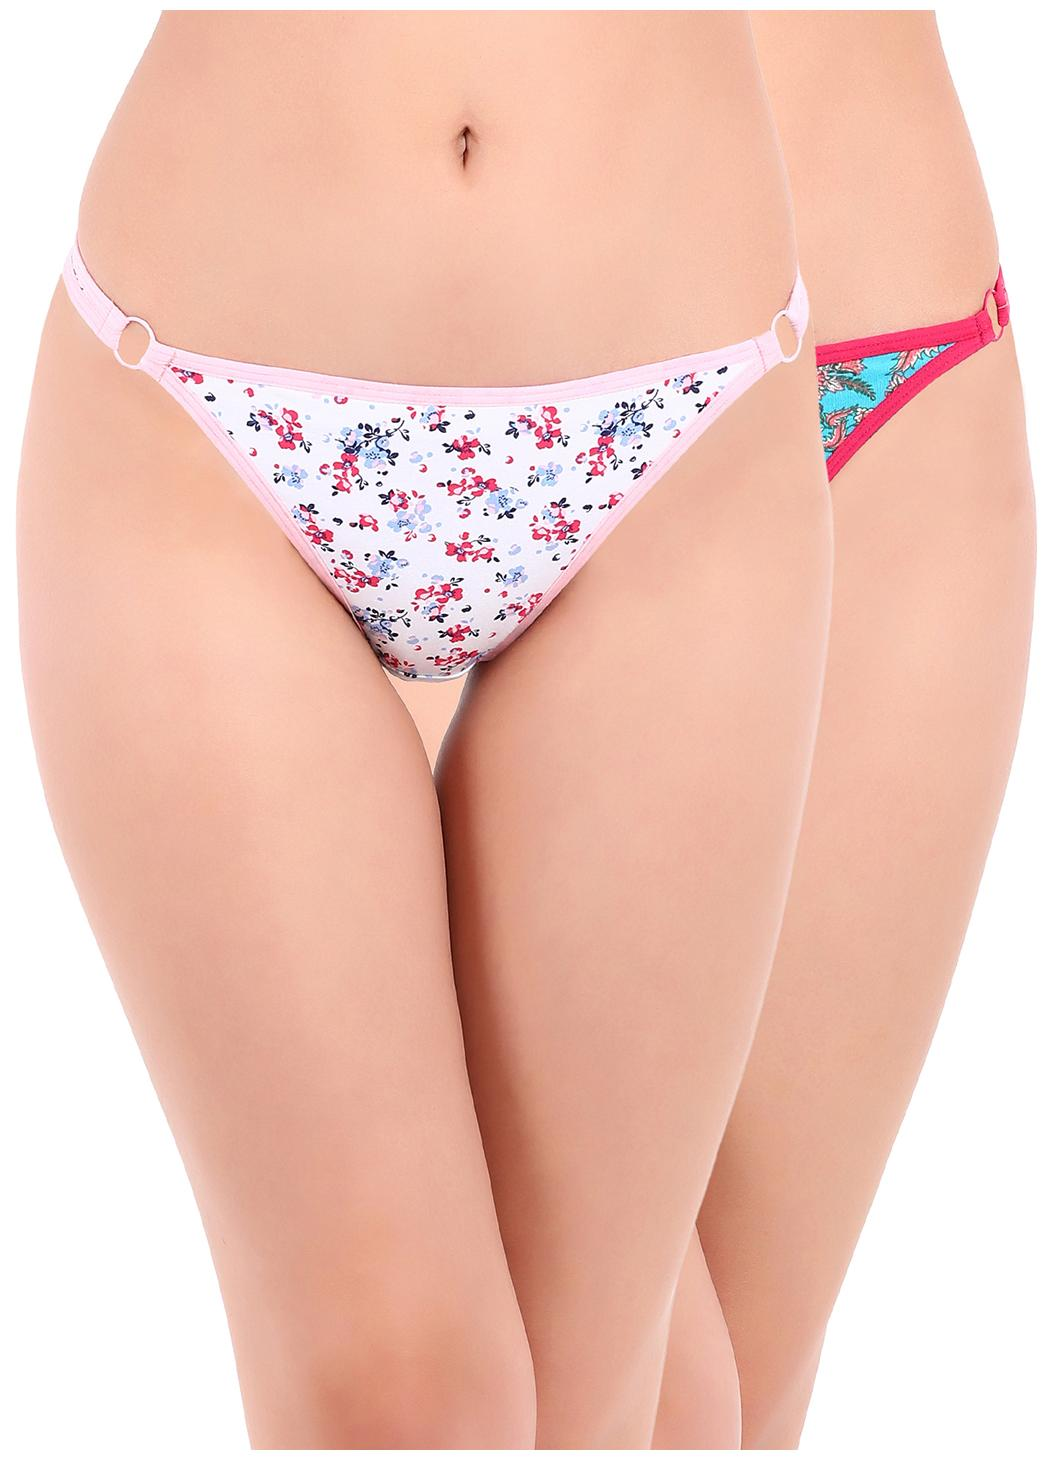 2a97e6d41e03 https://assetscdn1.paytm.com/images/catalog/product/. Clovia Cotton Low  Waist Printed Thong